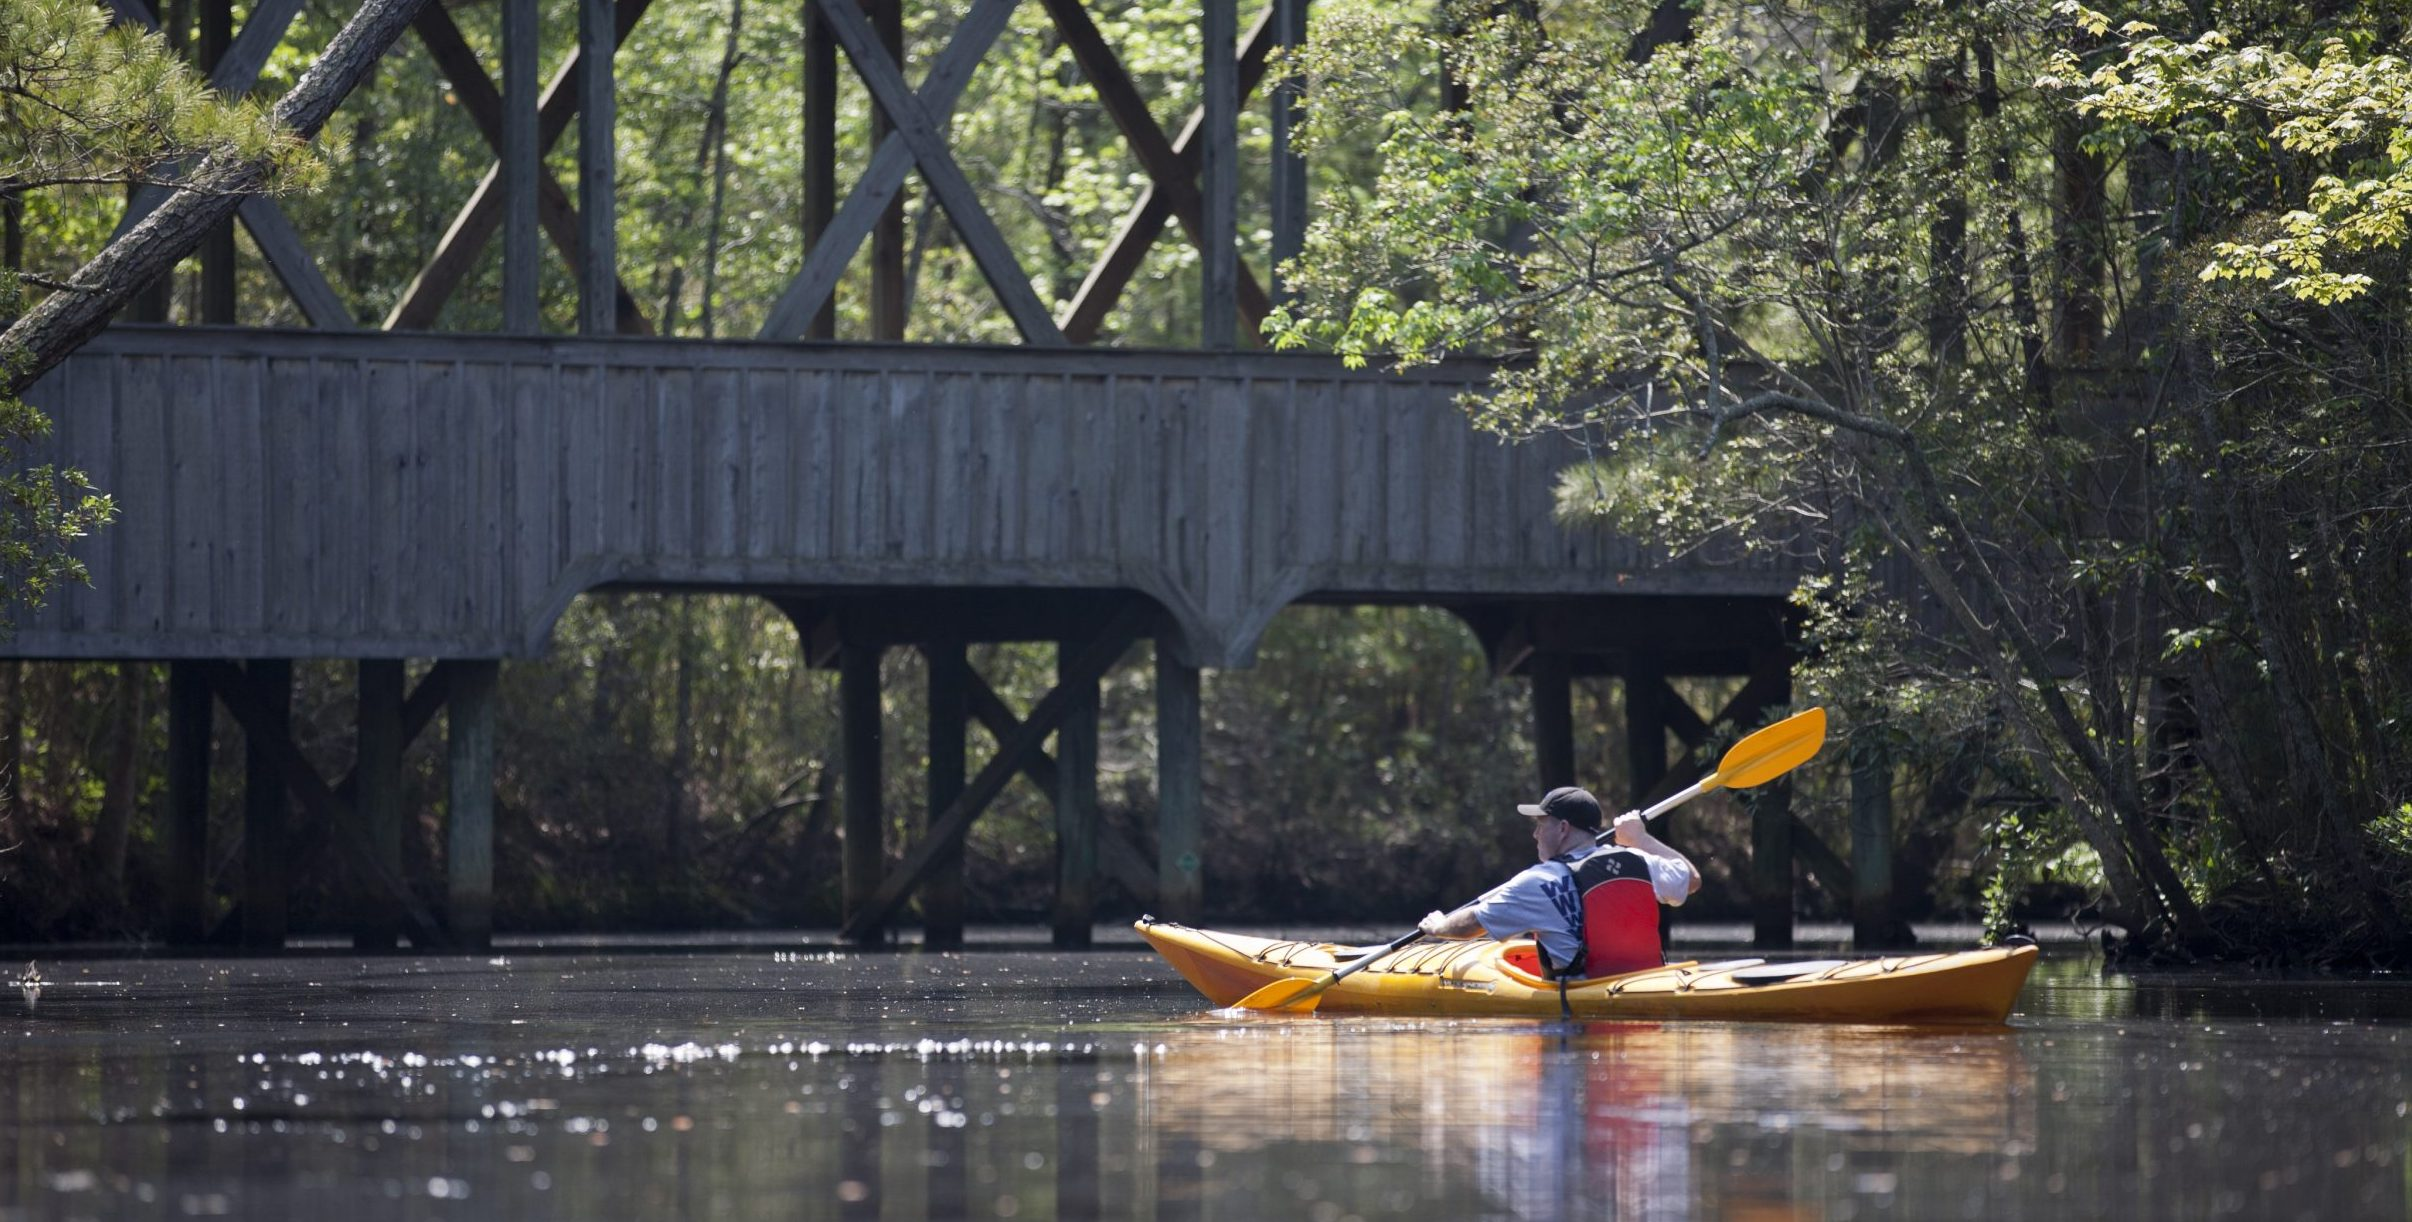 Kayaking in the Kitty Hawk Maritime Forest on the Outer Banks